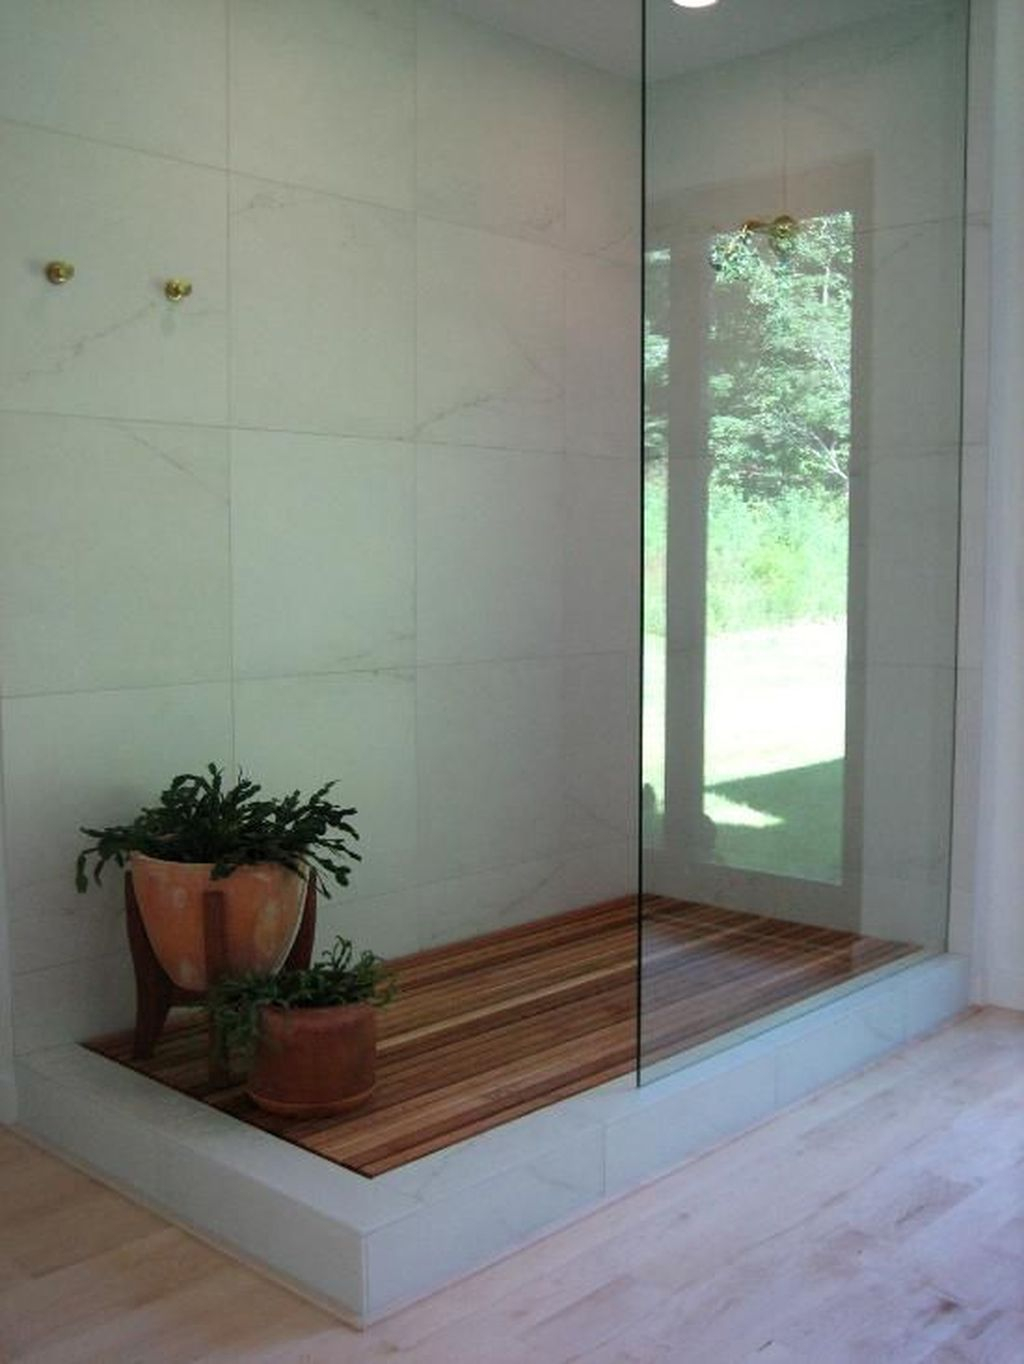 Marvelous Wooden Shower Floor Tiles Designs Ideas For Bathroom Remodel 11